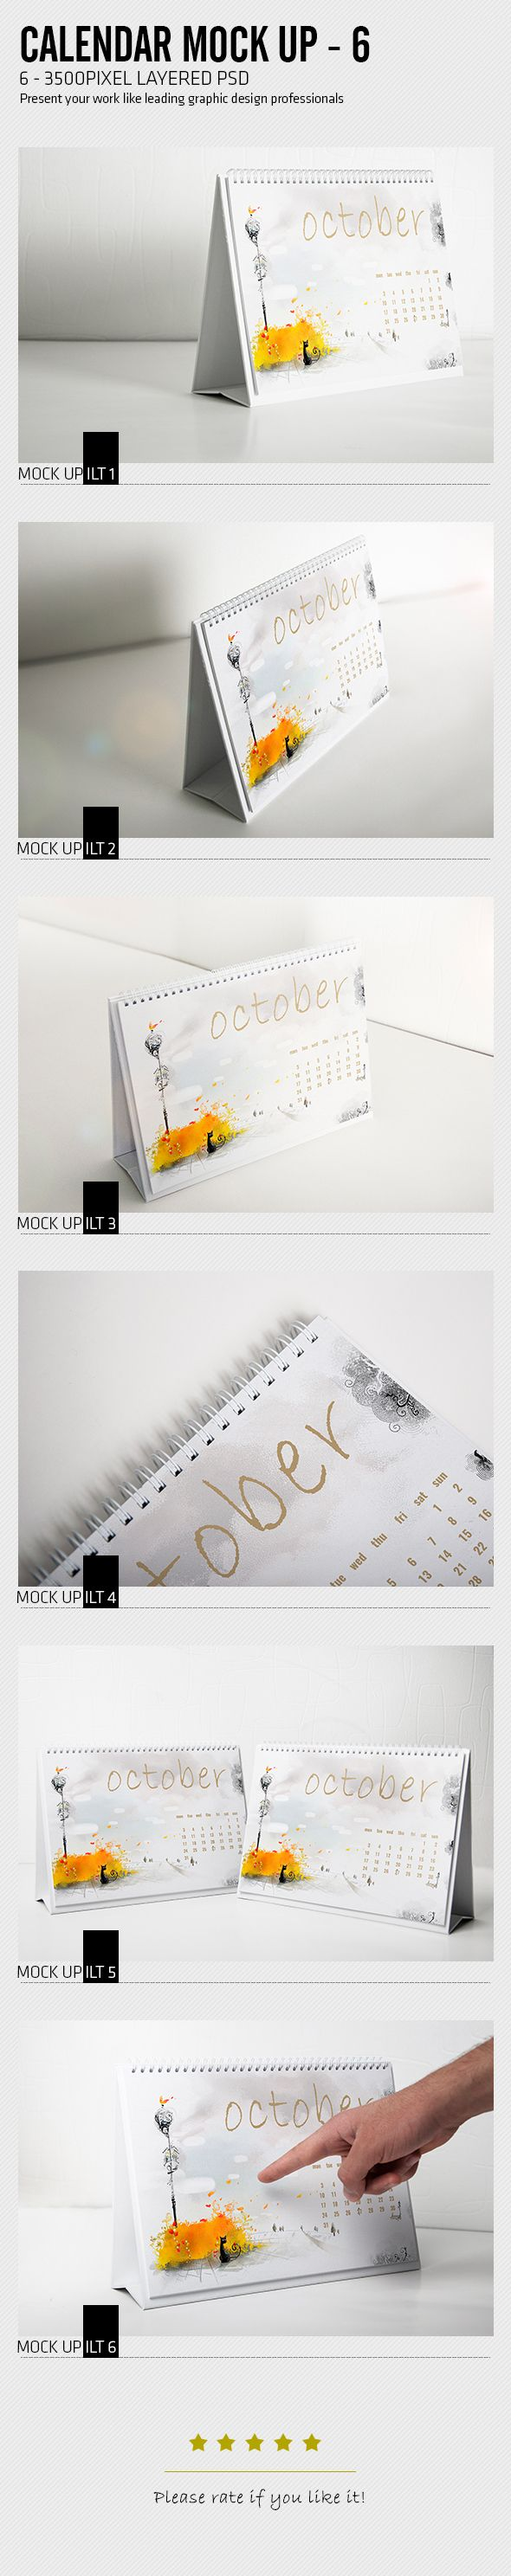 calender mock up, desk calender mockup 	calendar, calendar mockup, date, day, design, desk, desk calendar, editable, field, fully, horizontal calendar, layer, mock-up, mockup, object, office, page, perspective, presentation, print, psd, realistic, size, smart, standart, stationery, template